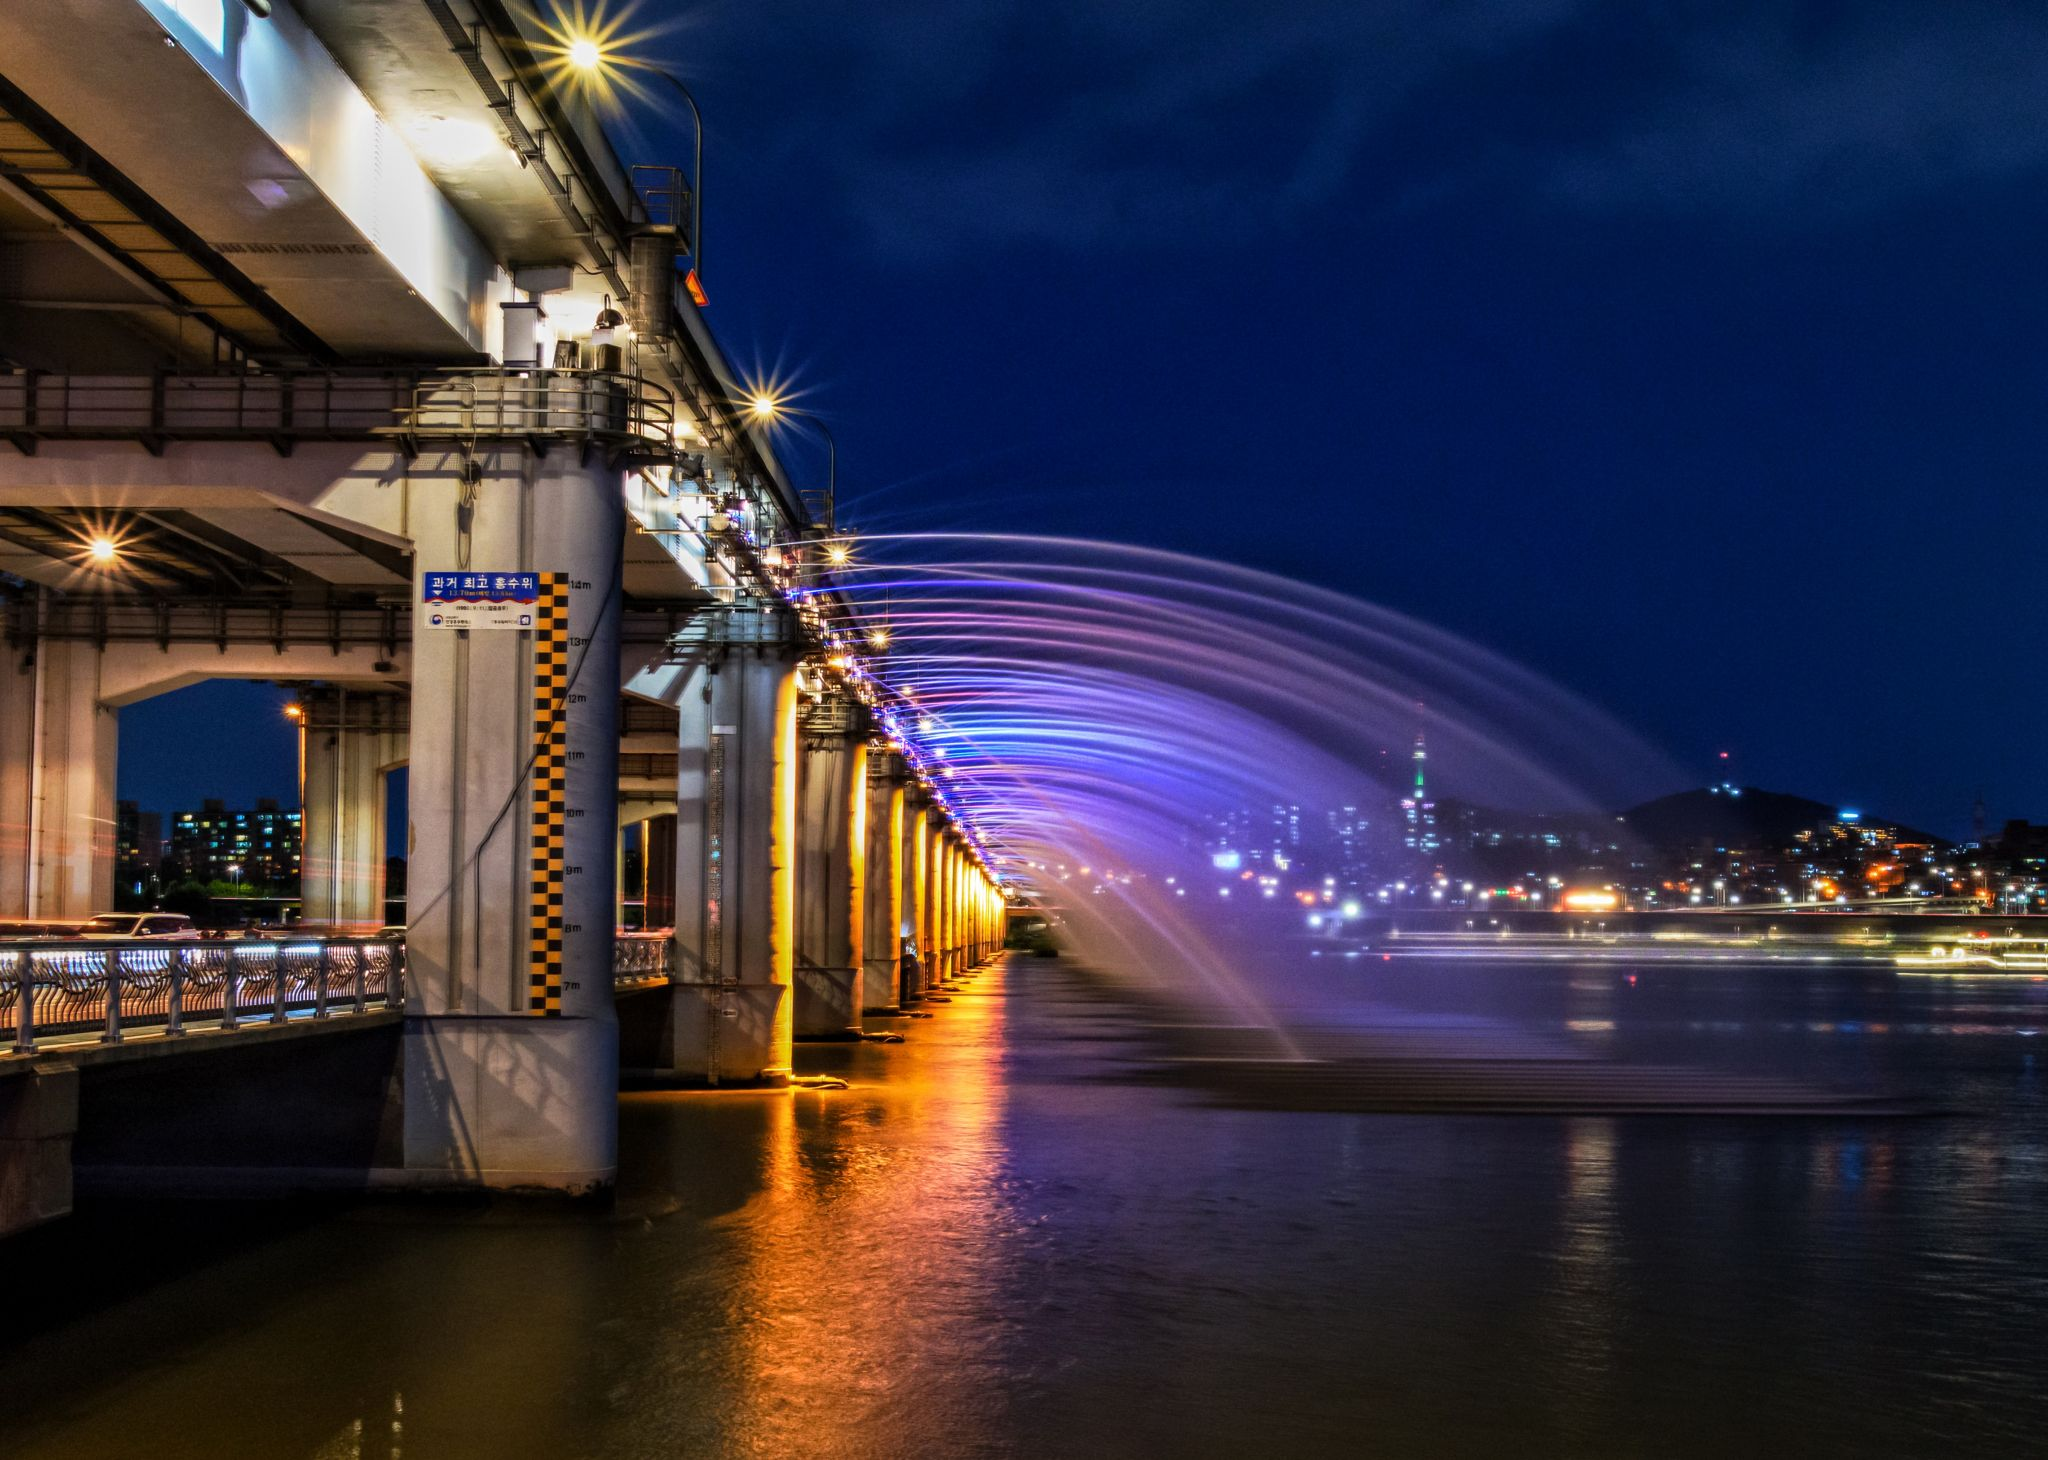 Banpo Bridge, Korea